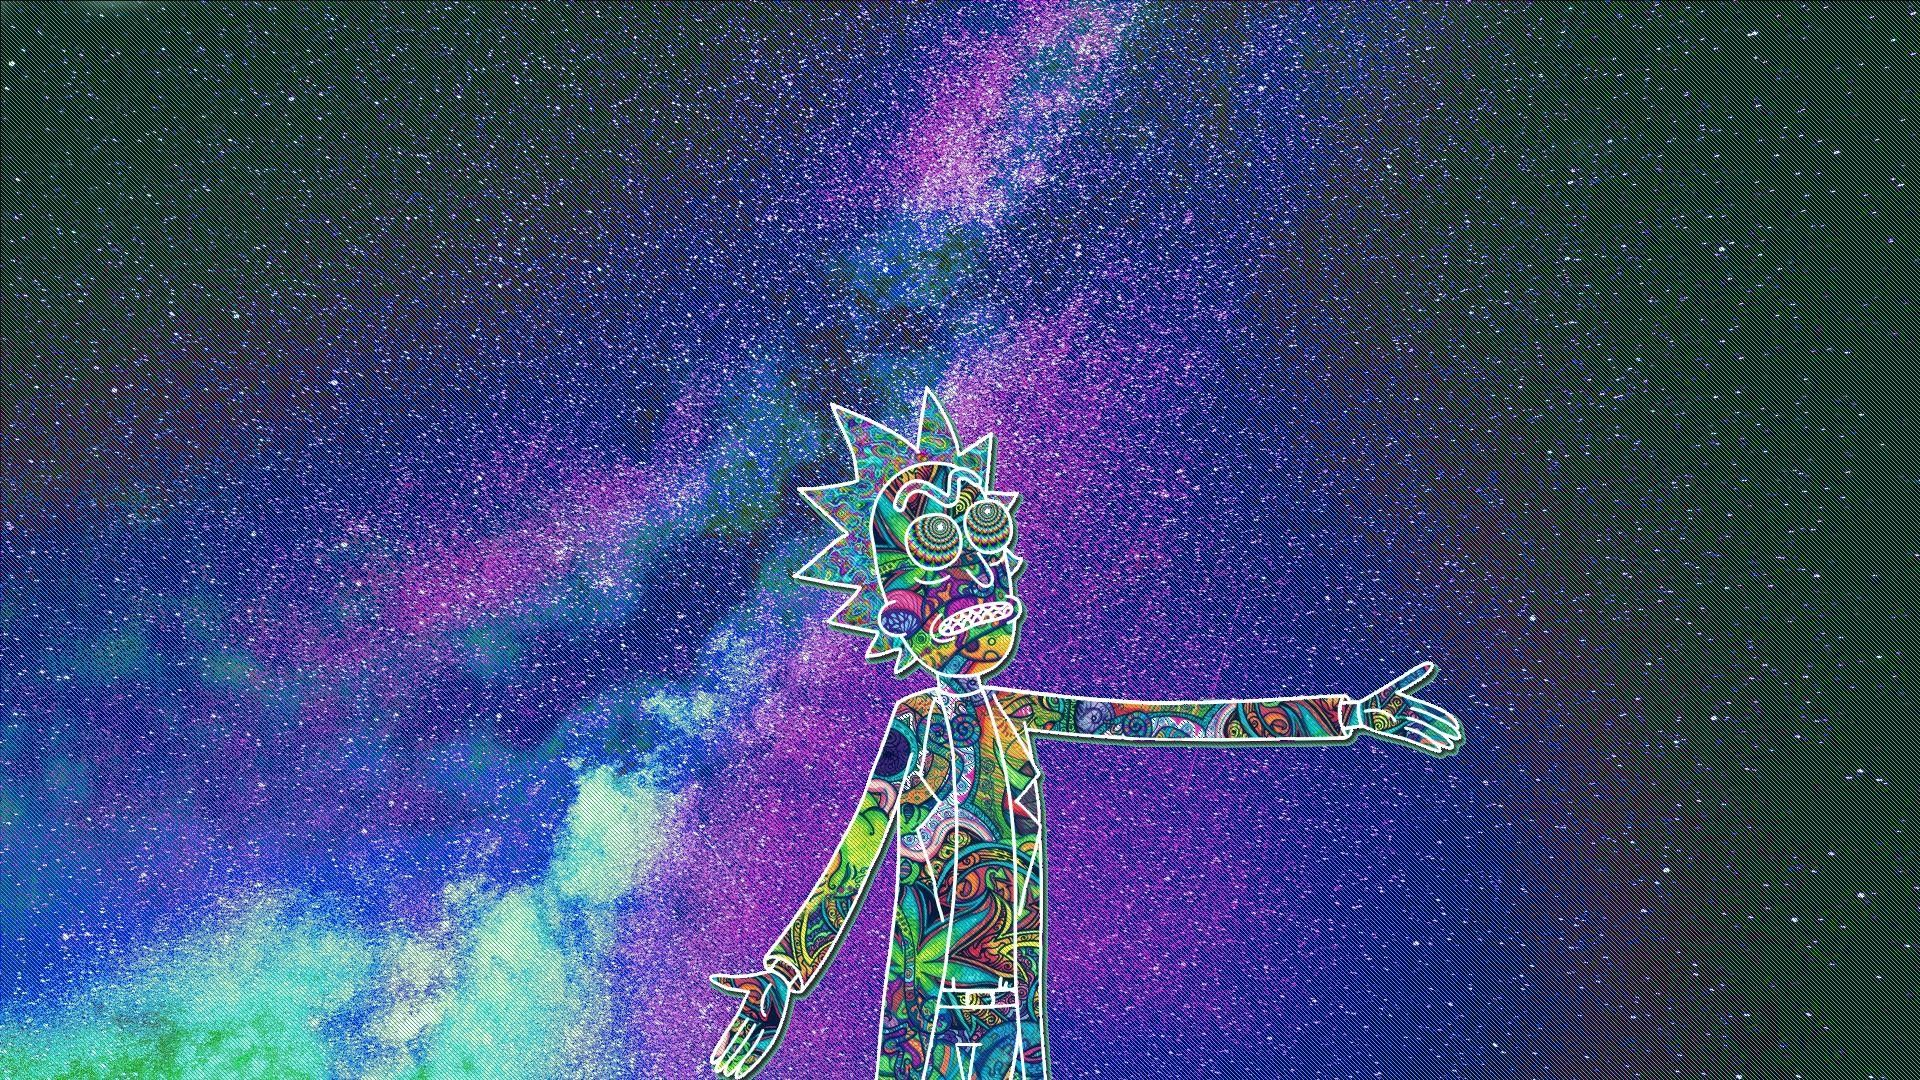 Rick And Morty Aesthetic Wallpaper